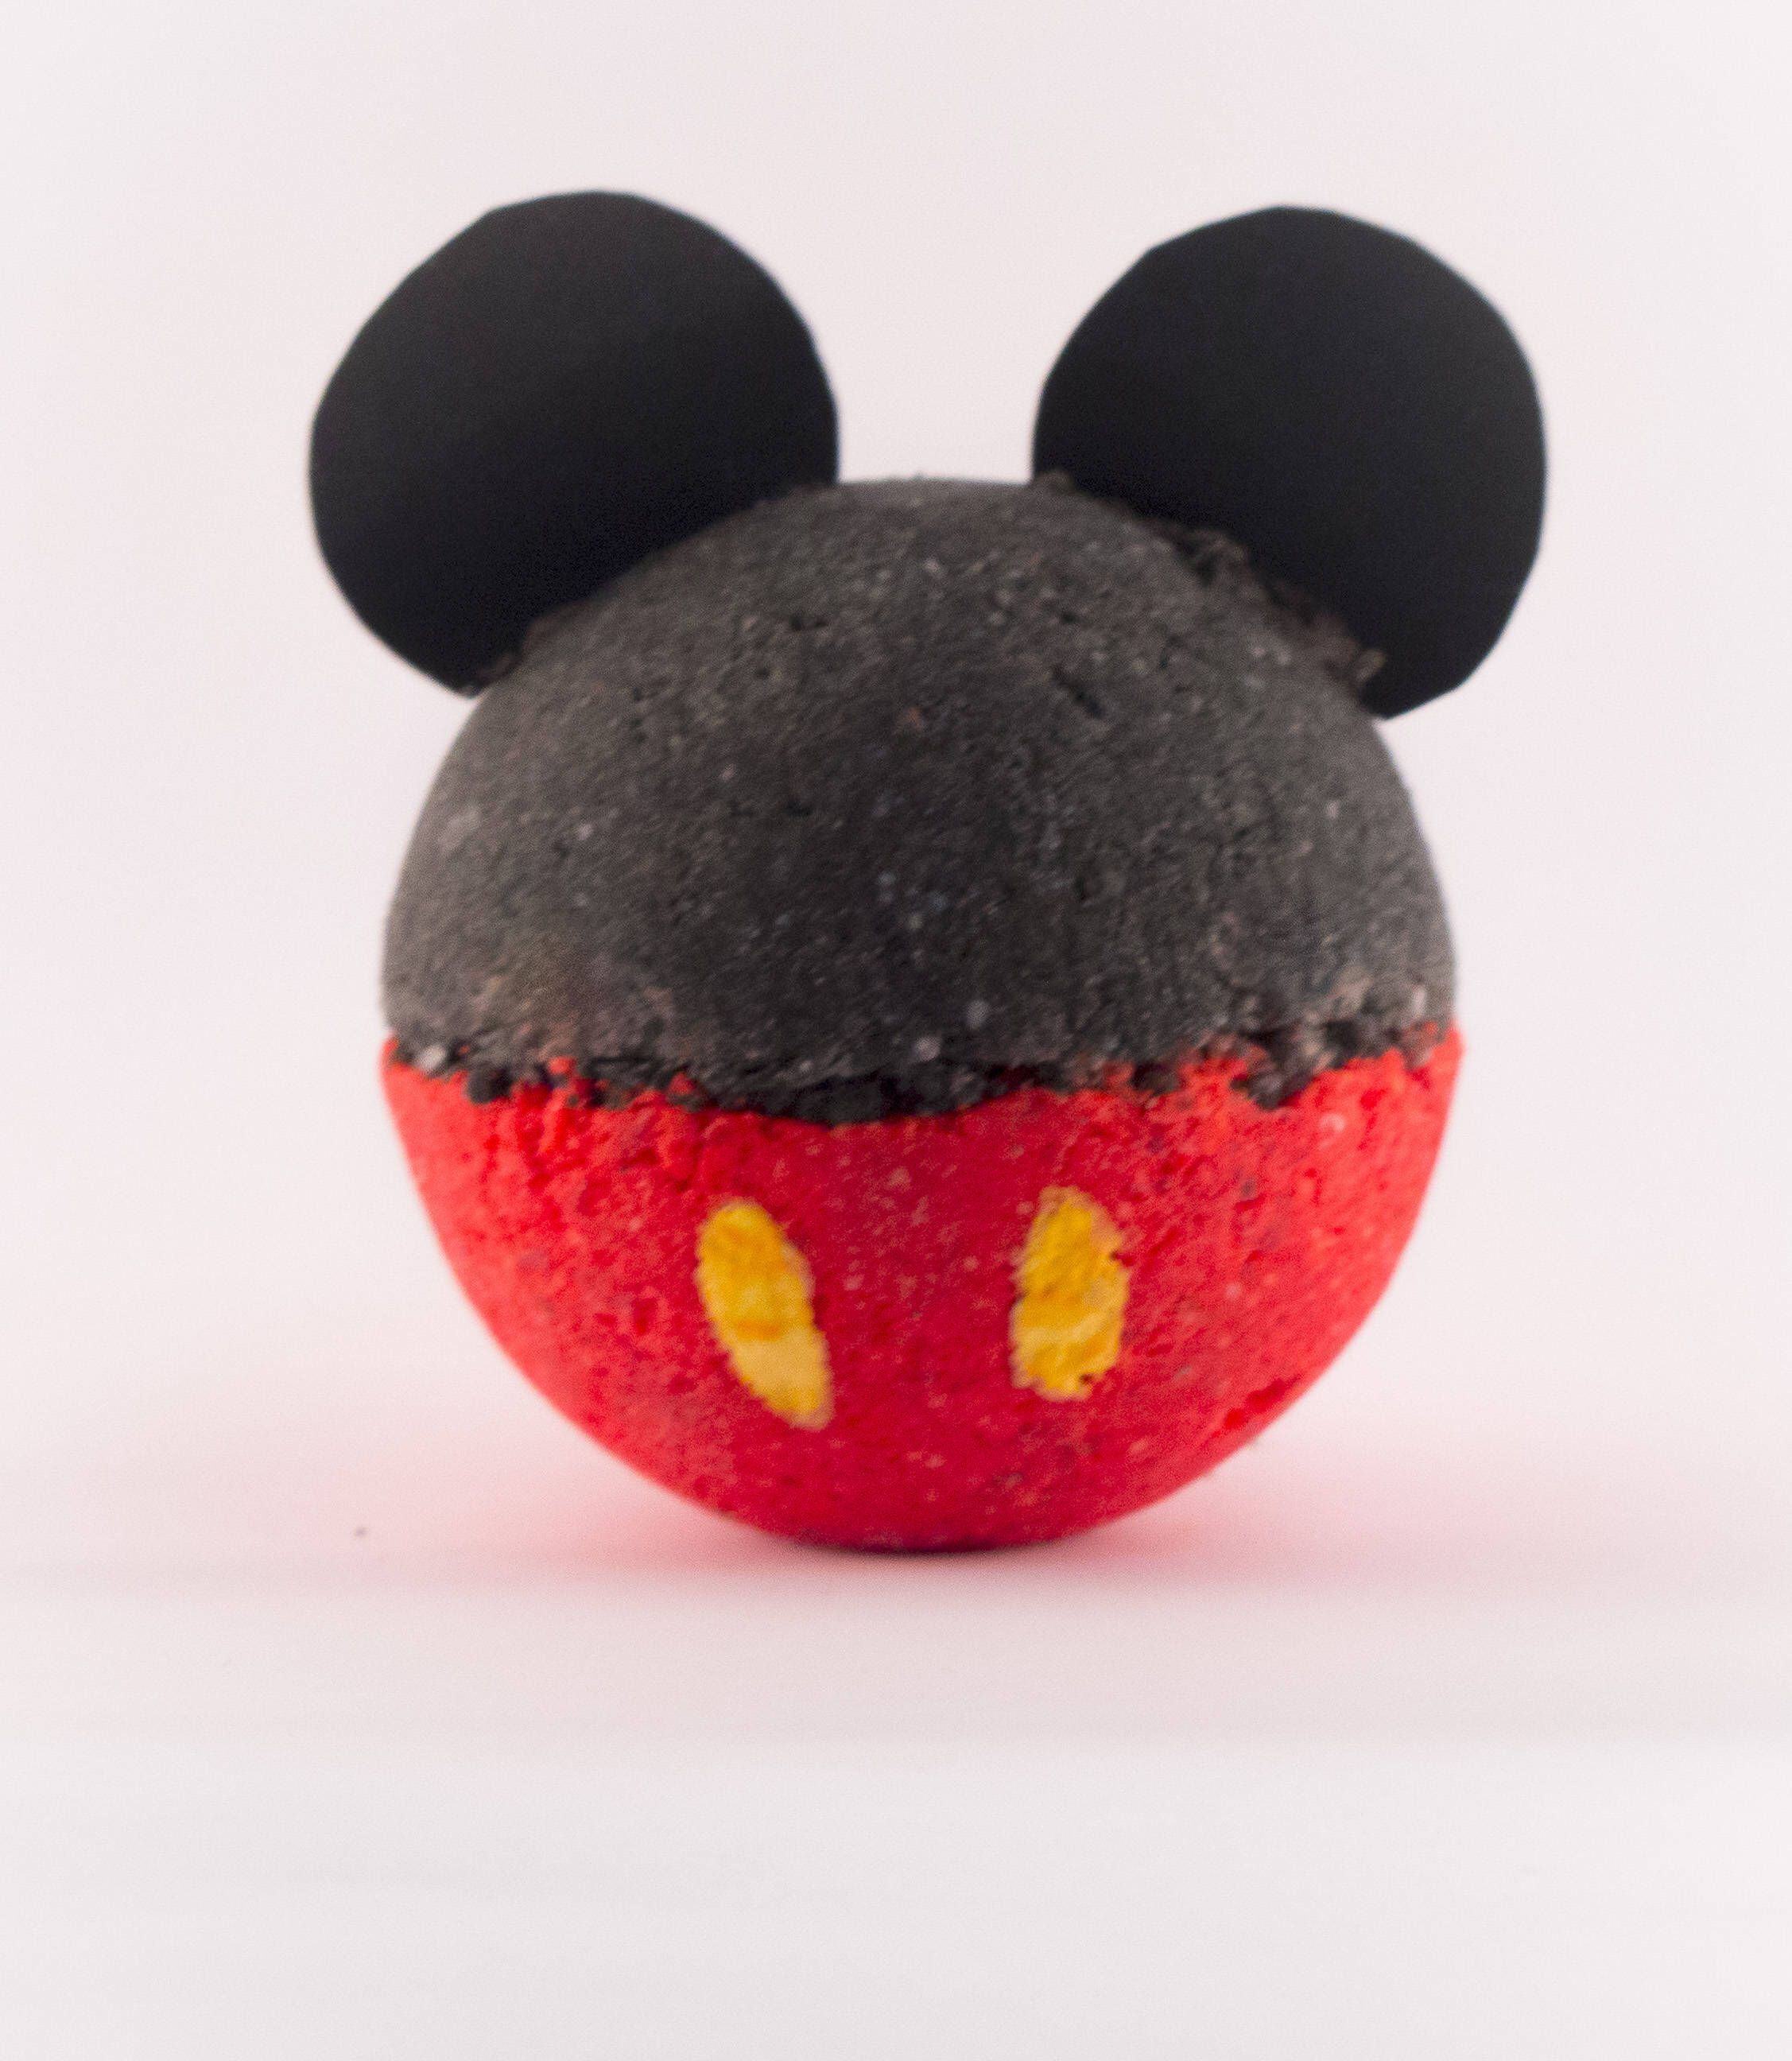 Mickey Mouse Bath Bomb Minnie Mouse Bath Bomb Disney Kids Gift Soap by POPbathbombs on Etsy https://www.etsy.com/au/listing/533779530/mickey-mouse-bath-bomb-minnie-mouse-bath